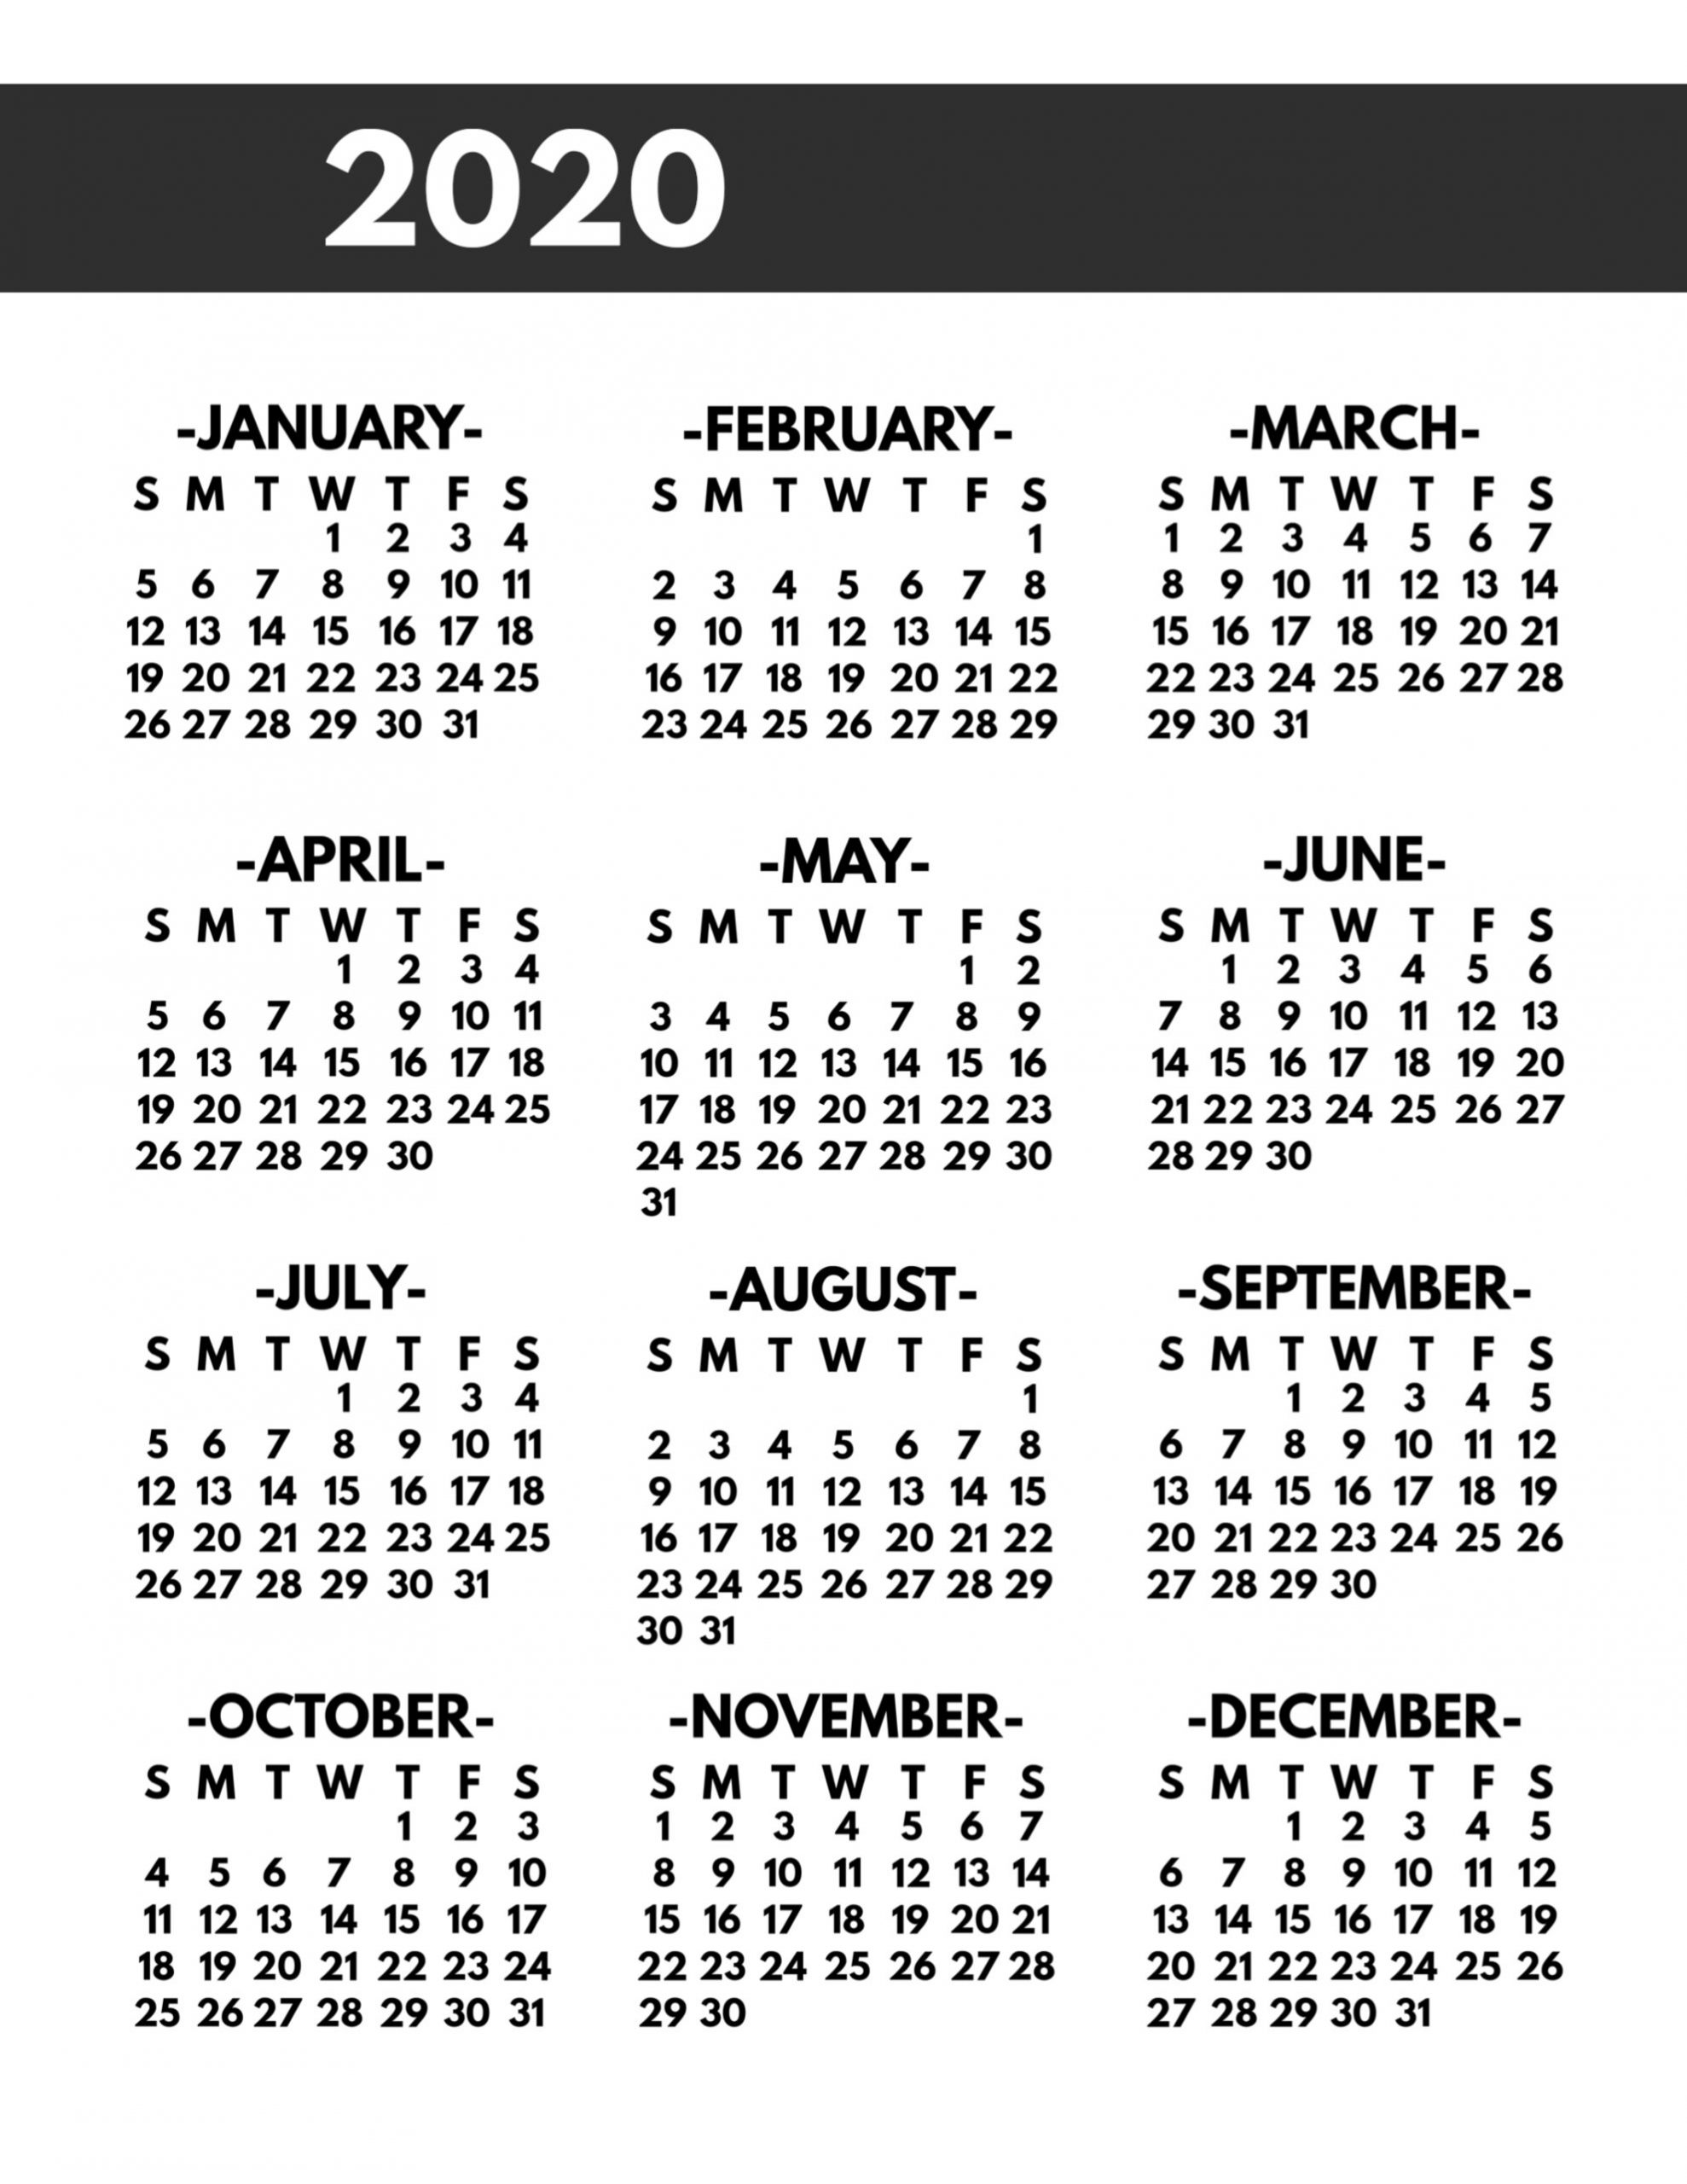 2020 Printable One Page Year At A Glance Calendar | Paper throughout Year At A Glance Calendar 2020 8.5 X 11